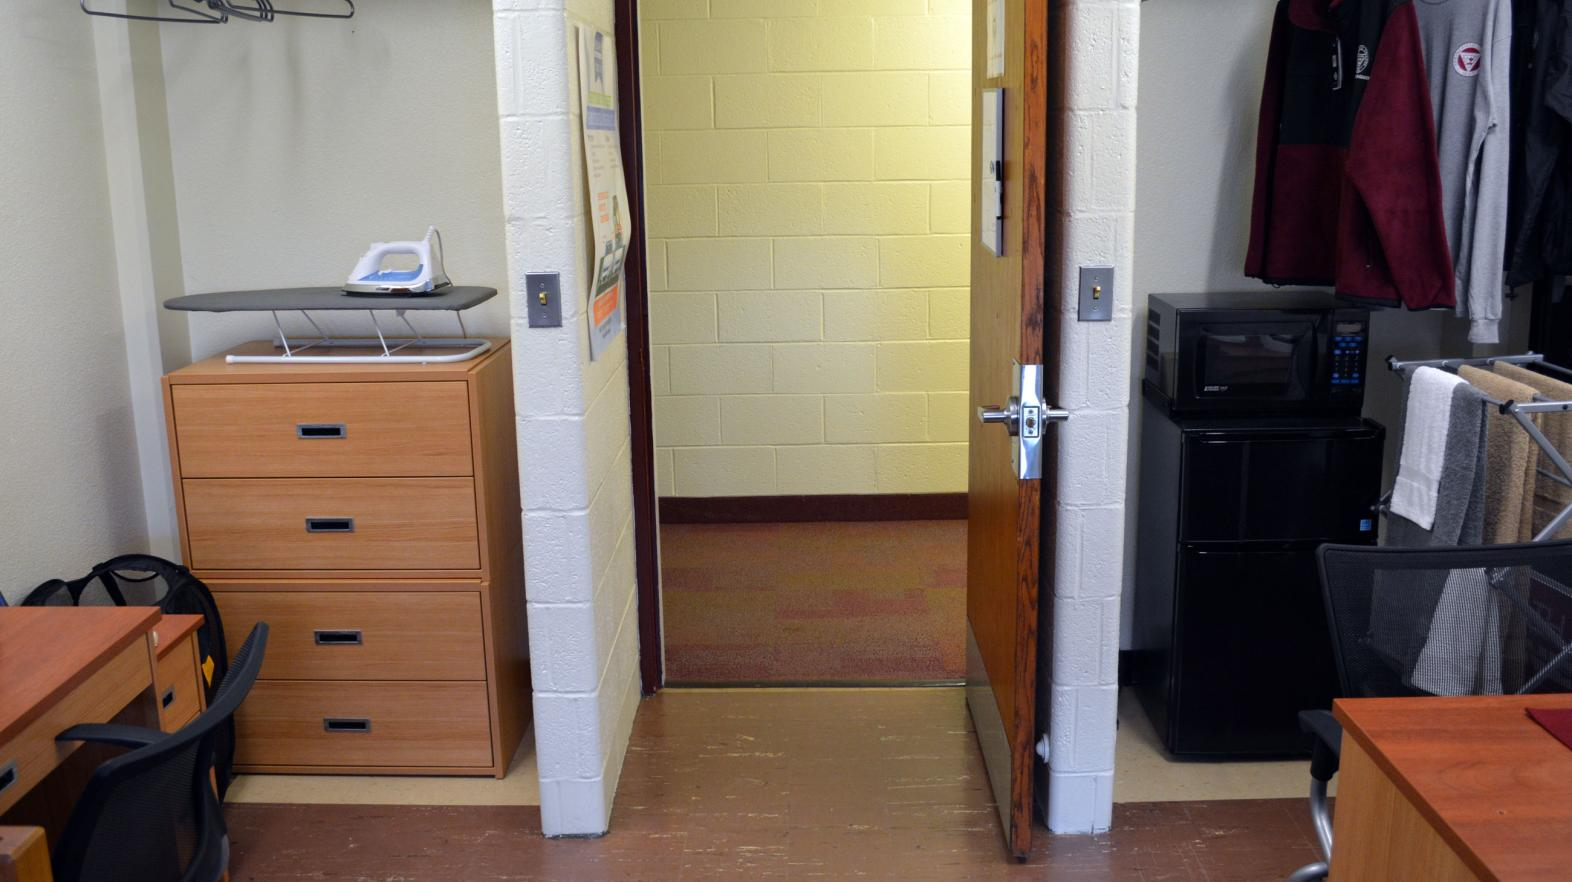 Massasoit Hall room with an open door and closet to show the community feel created in the residence hall.